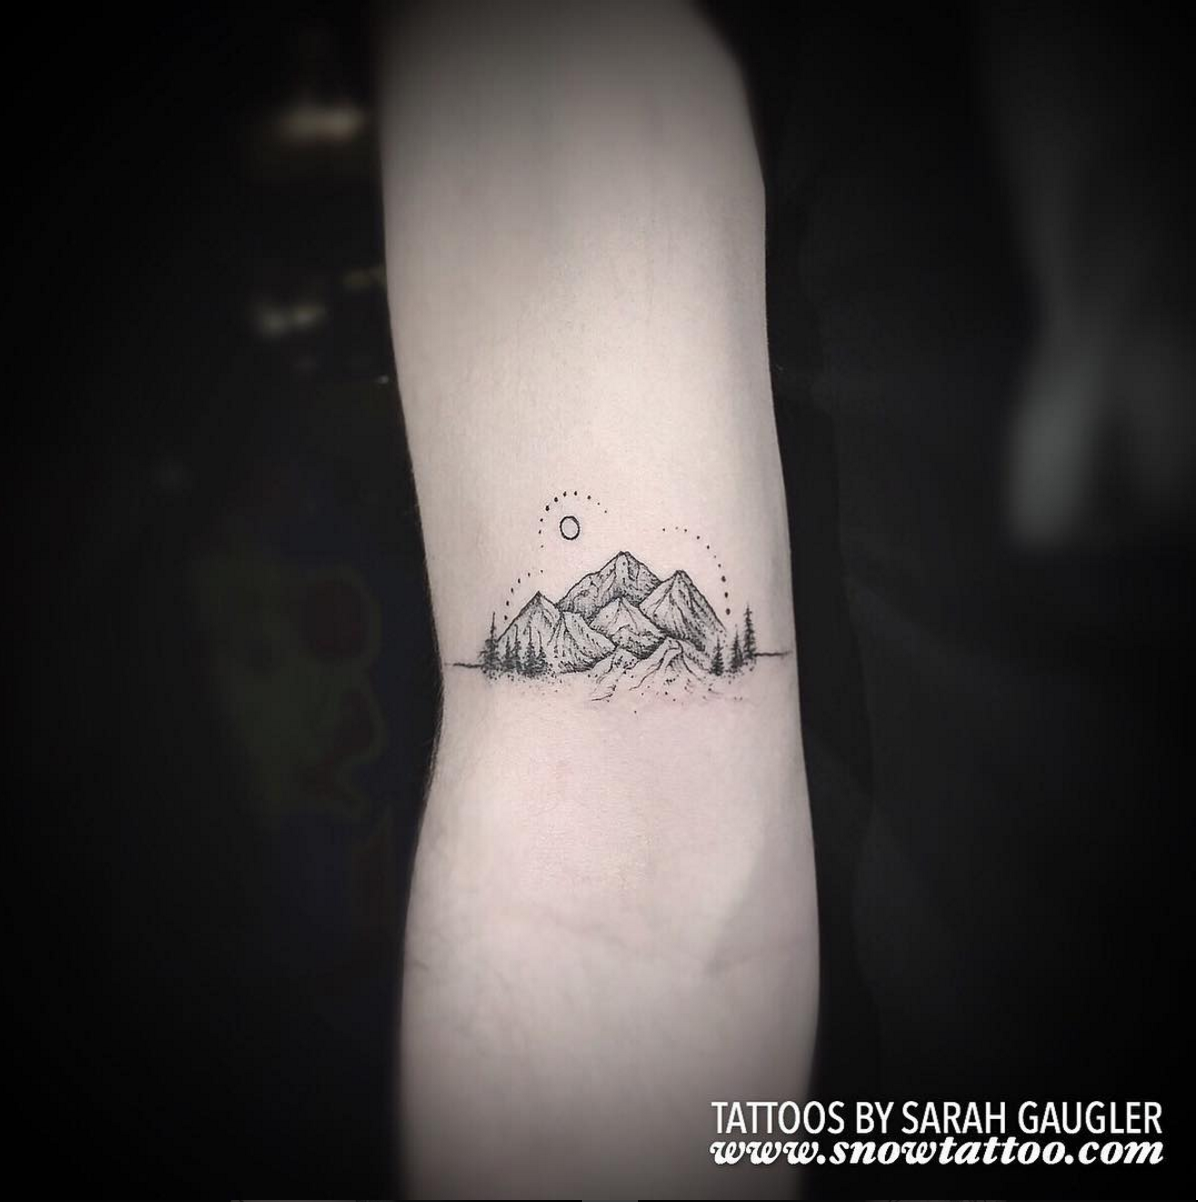 Sarah Gaugler Snow Tattoo Custom Mountain and Moon New York Best Tattoos Best Tattoo Artist NYC.png